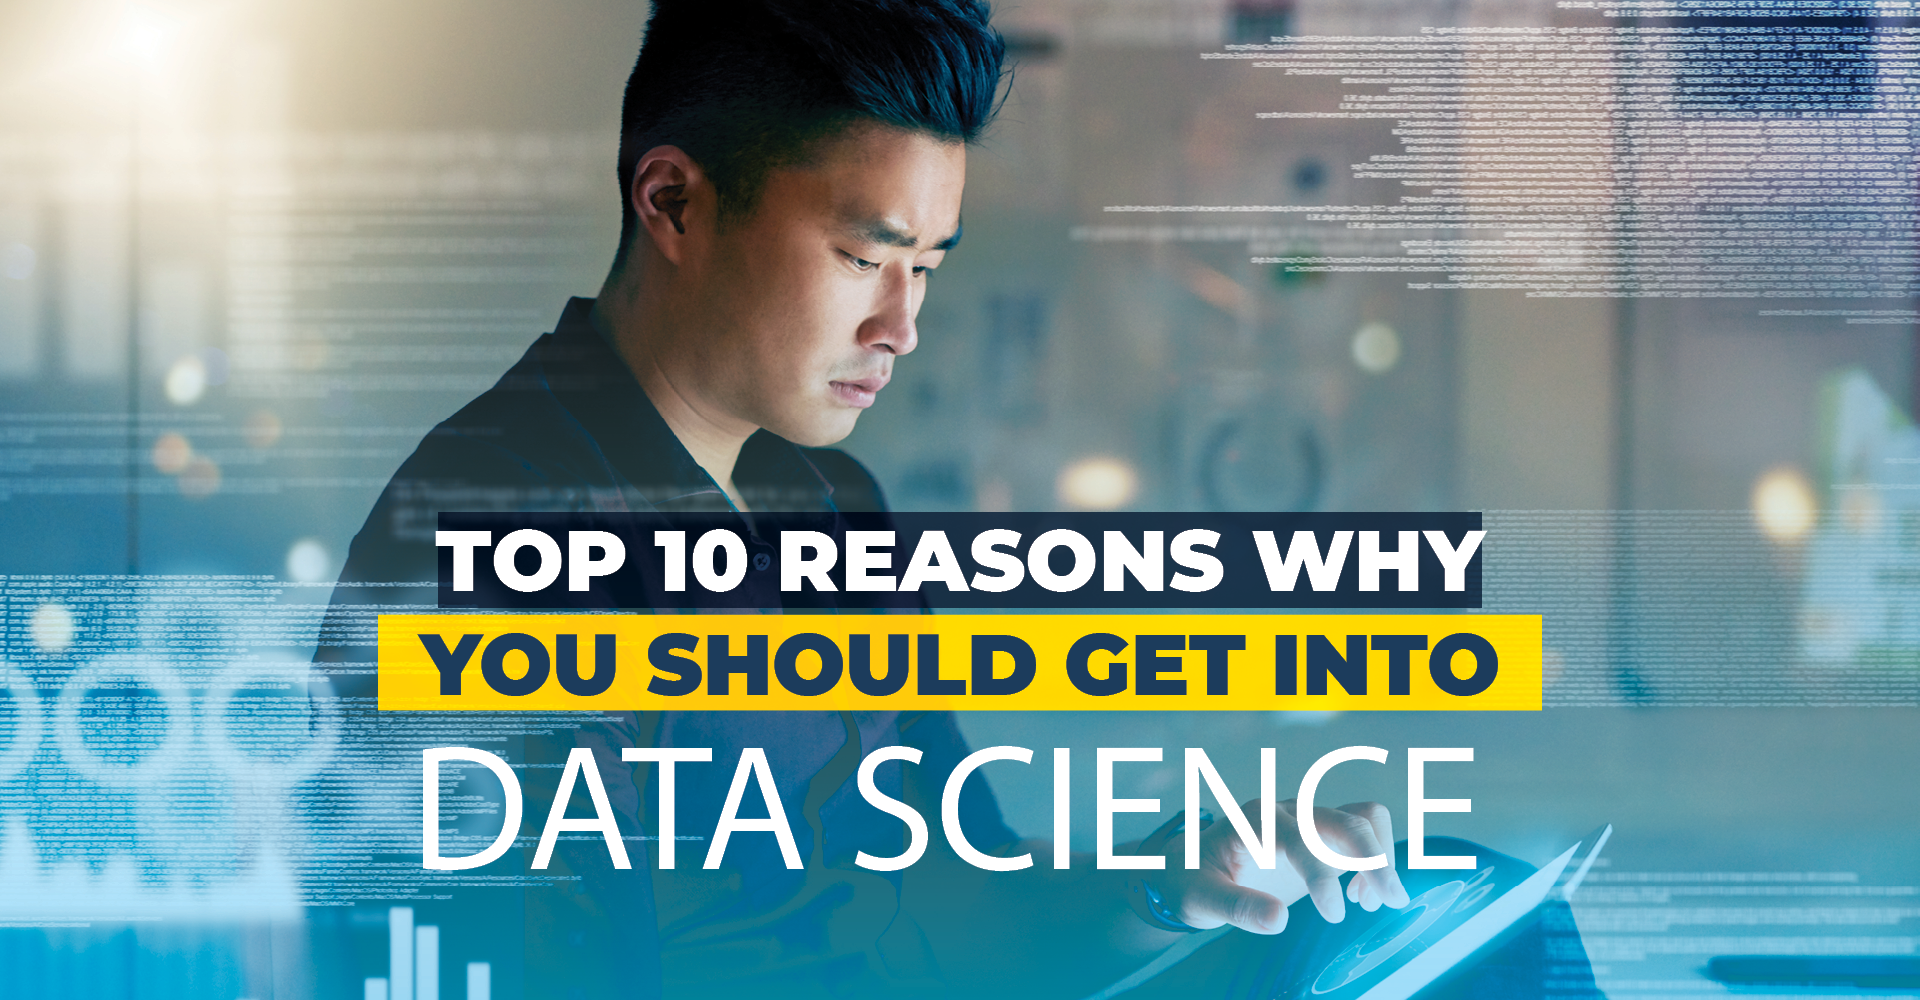 Featured image: Top 10 Reasons Why You Should Get Into Data Science - Read full post: Top 10 Reasons Why You Should Get Into Data Science